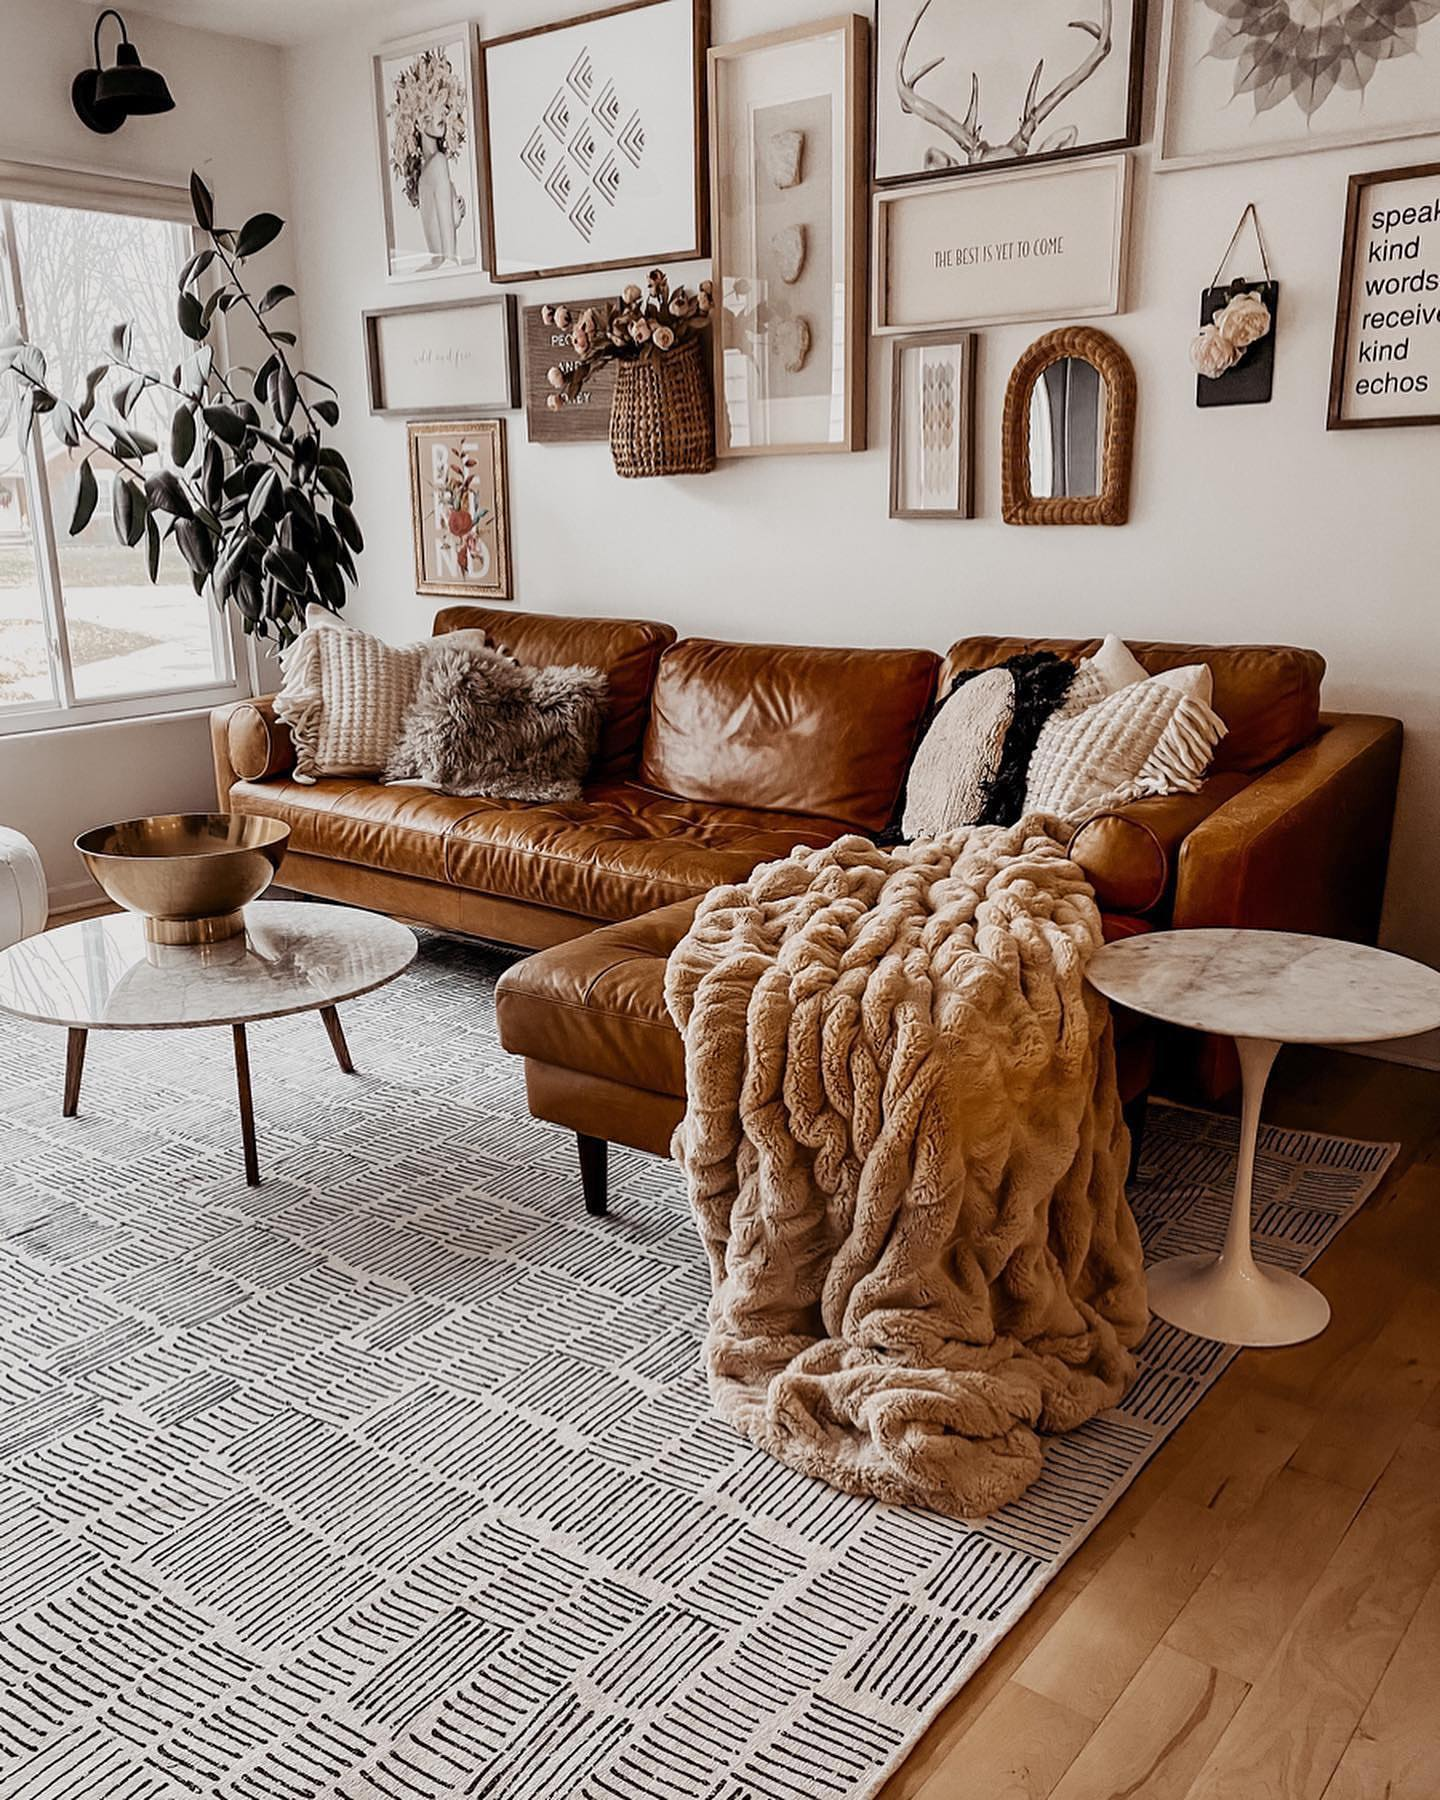 6 Rugs That Will Make Your Space Look Larger Living Room Inspo Home Design Your Dream House